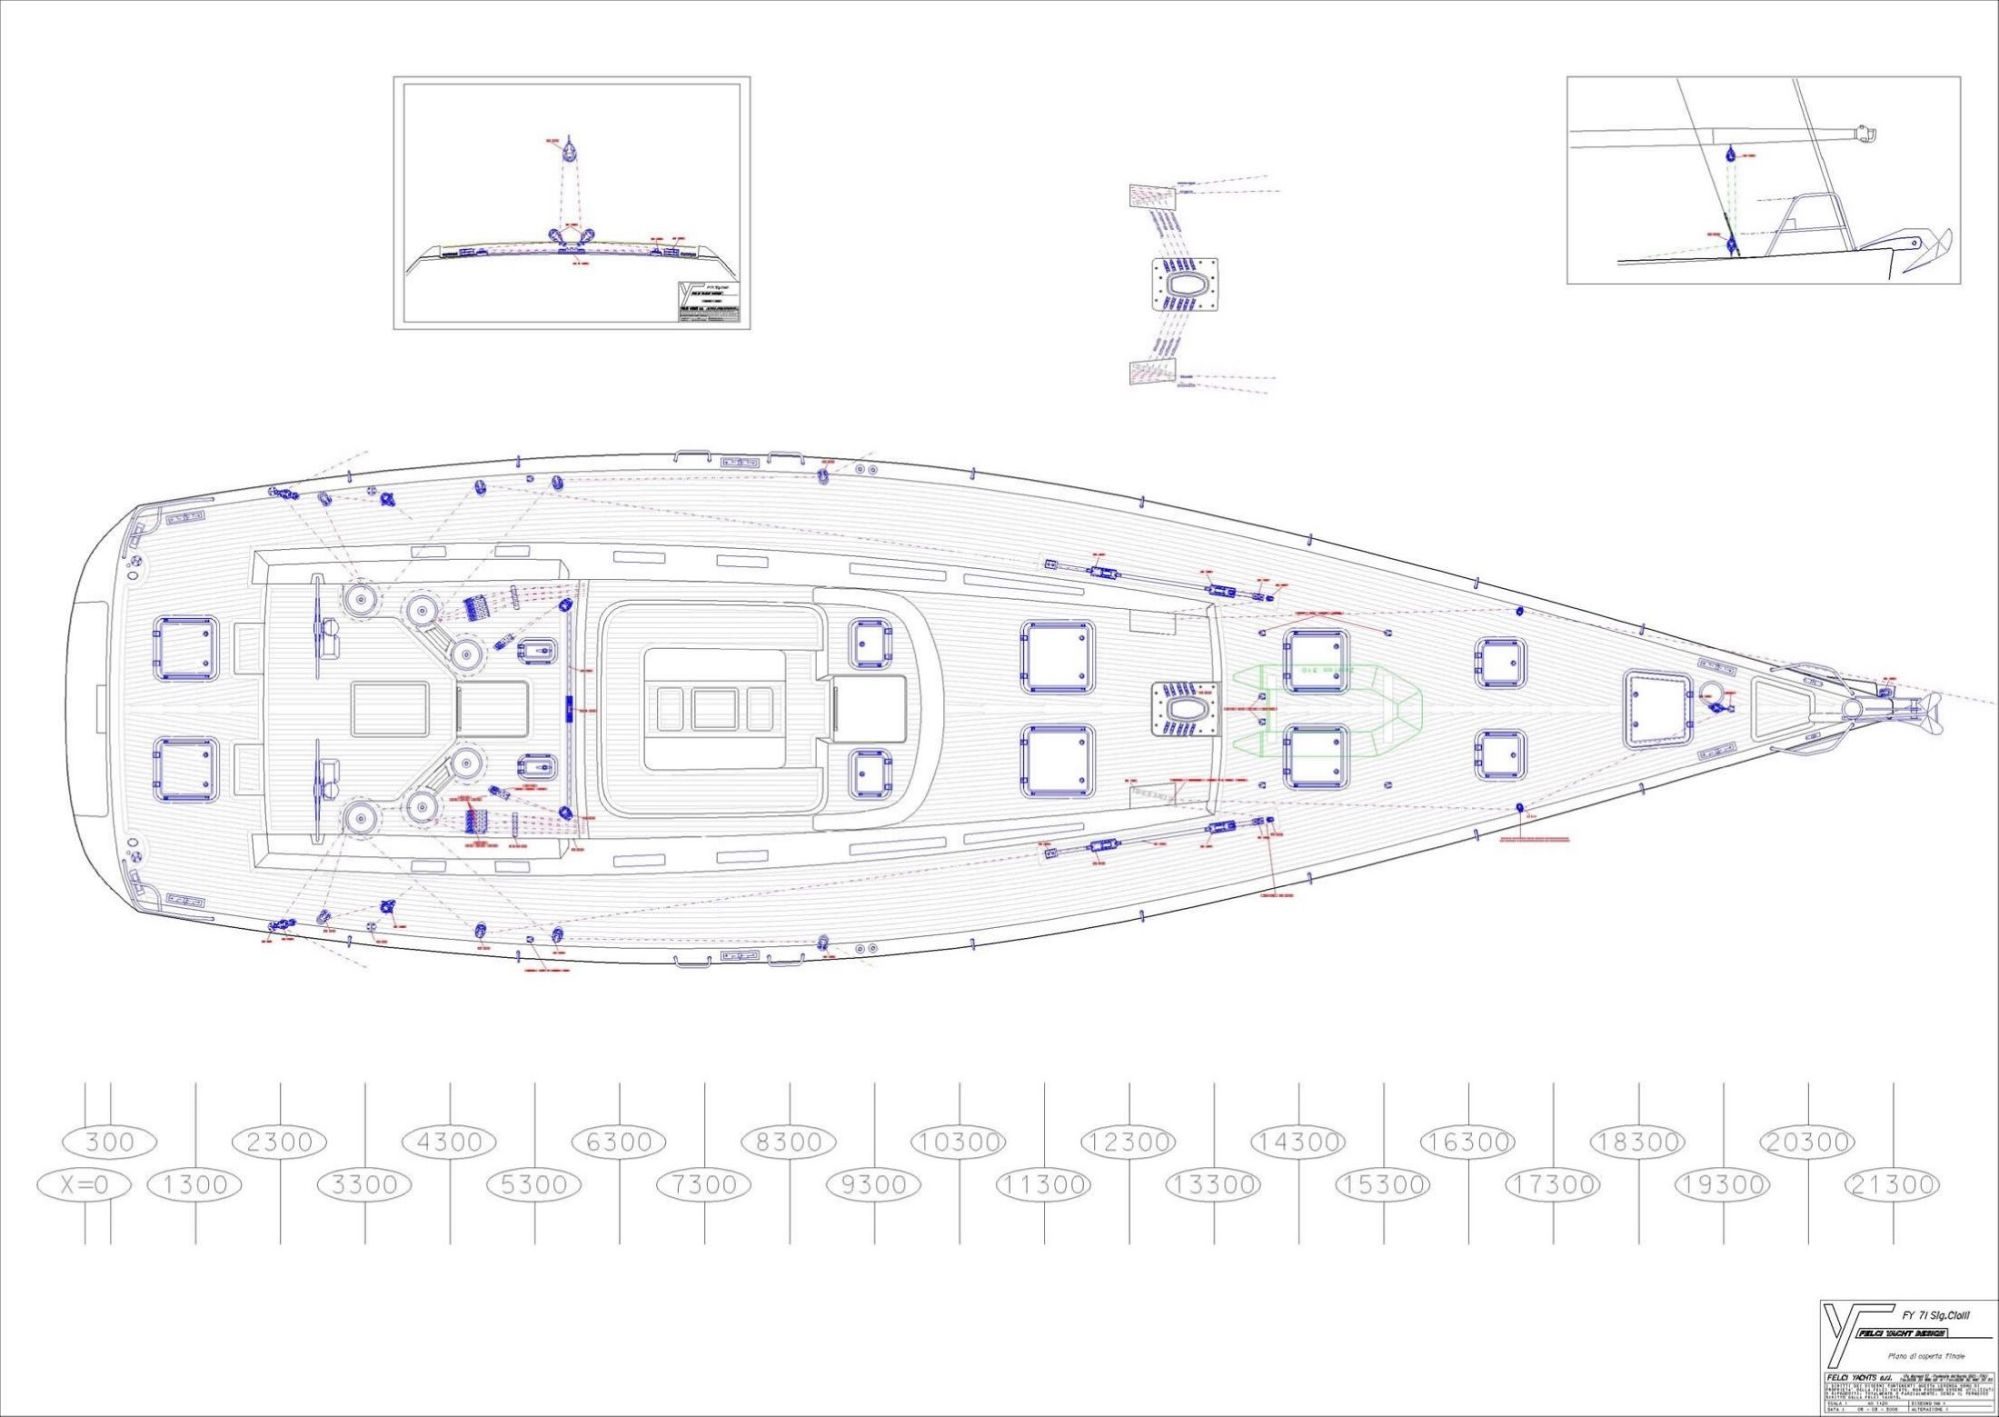 hight resolution of 71 felci yacht design fy 71 marador deck plan